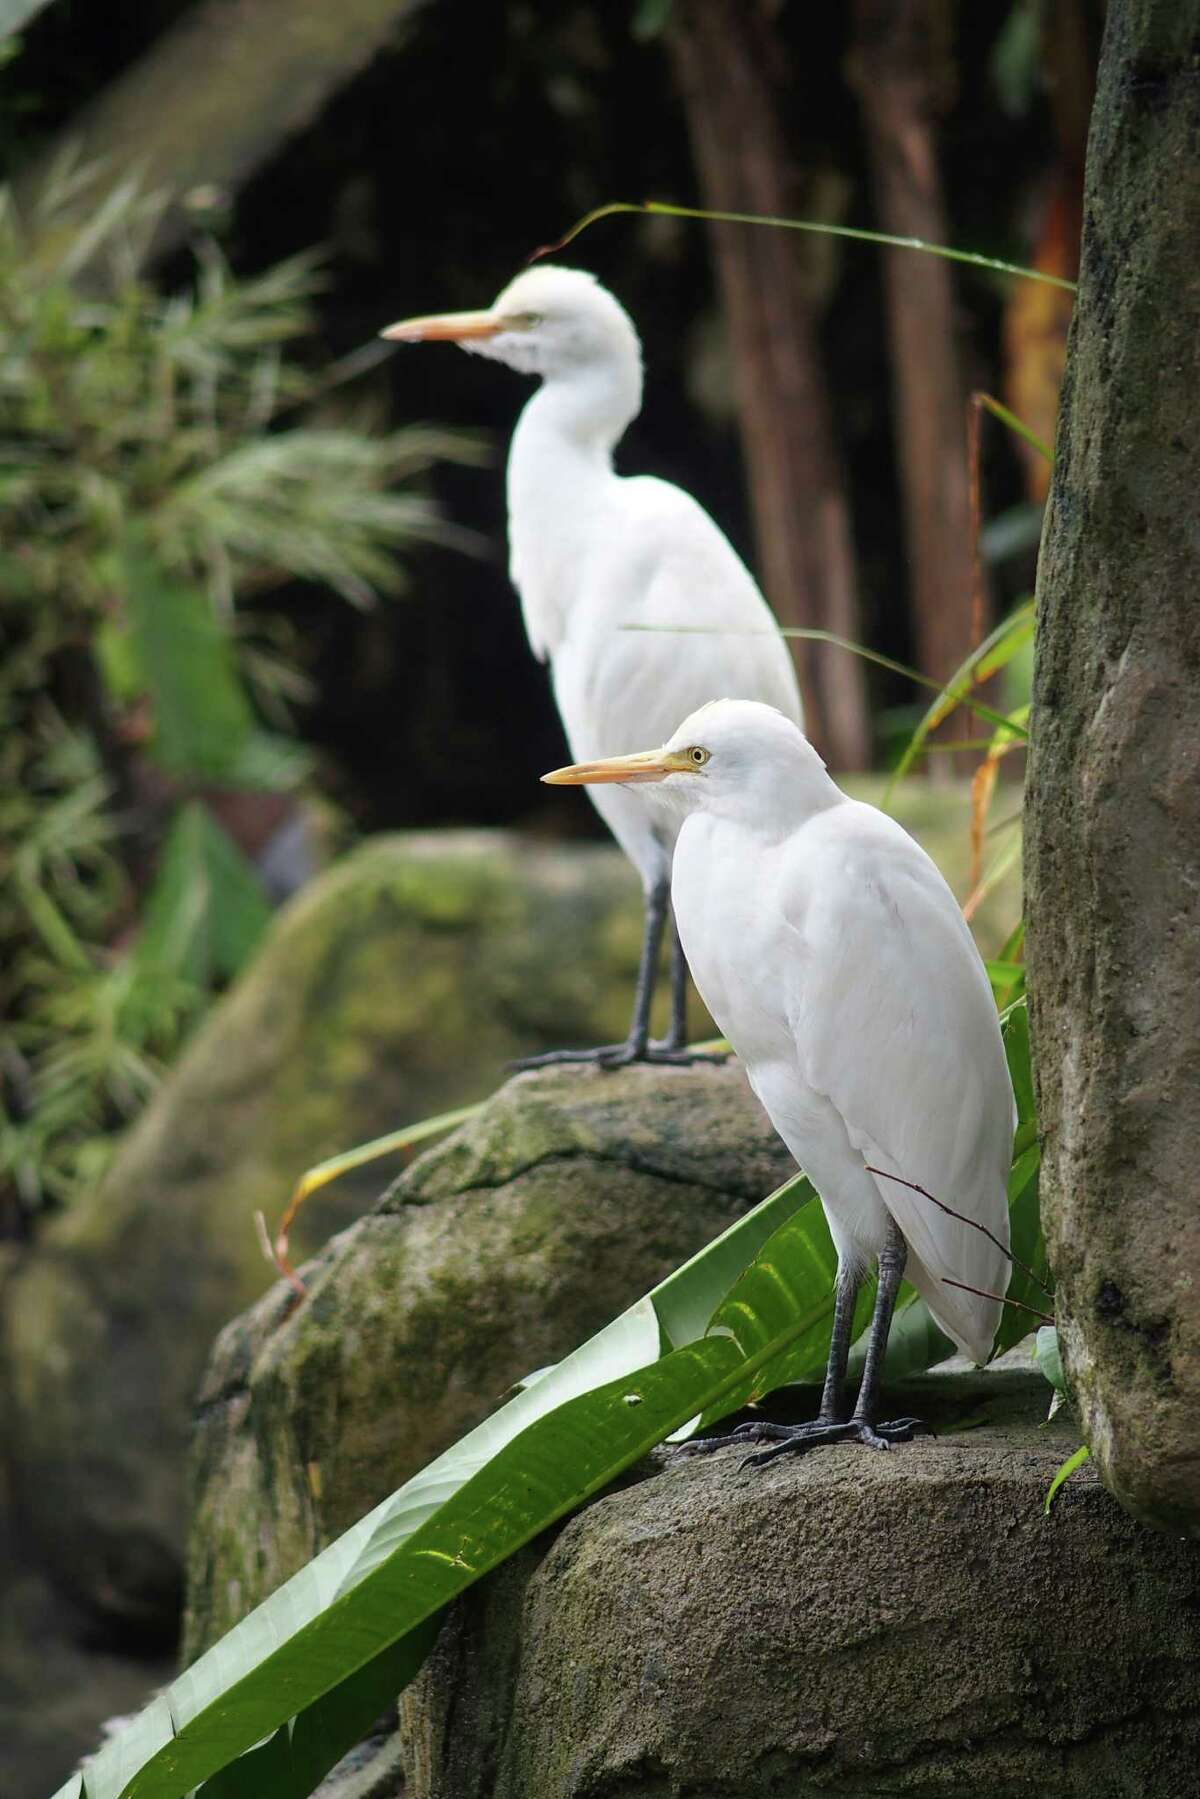 Residents at K.L. Bird Park in Kuala Lumpur, said to be the largest free-flight walk-in aviary in the world.